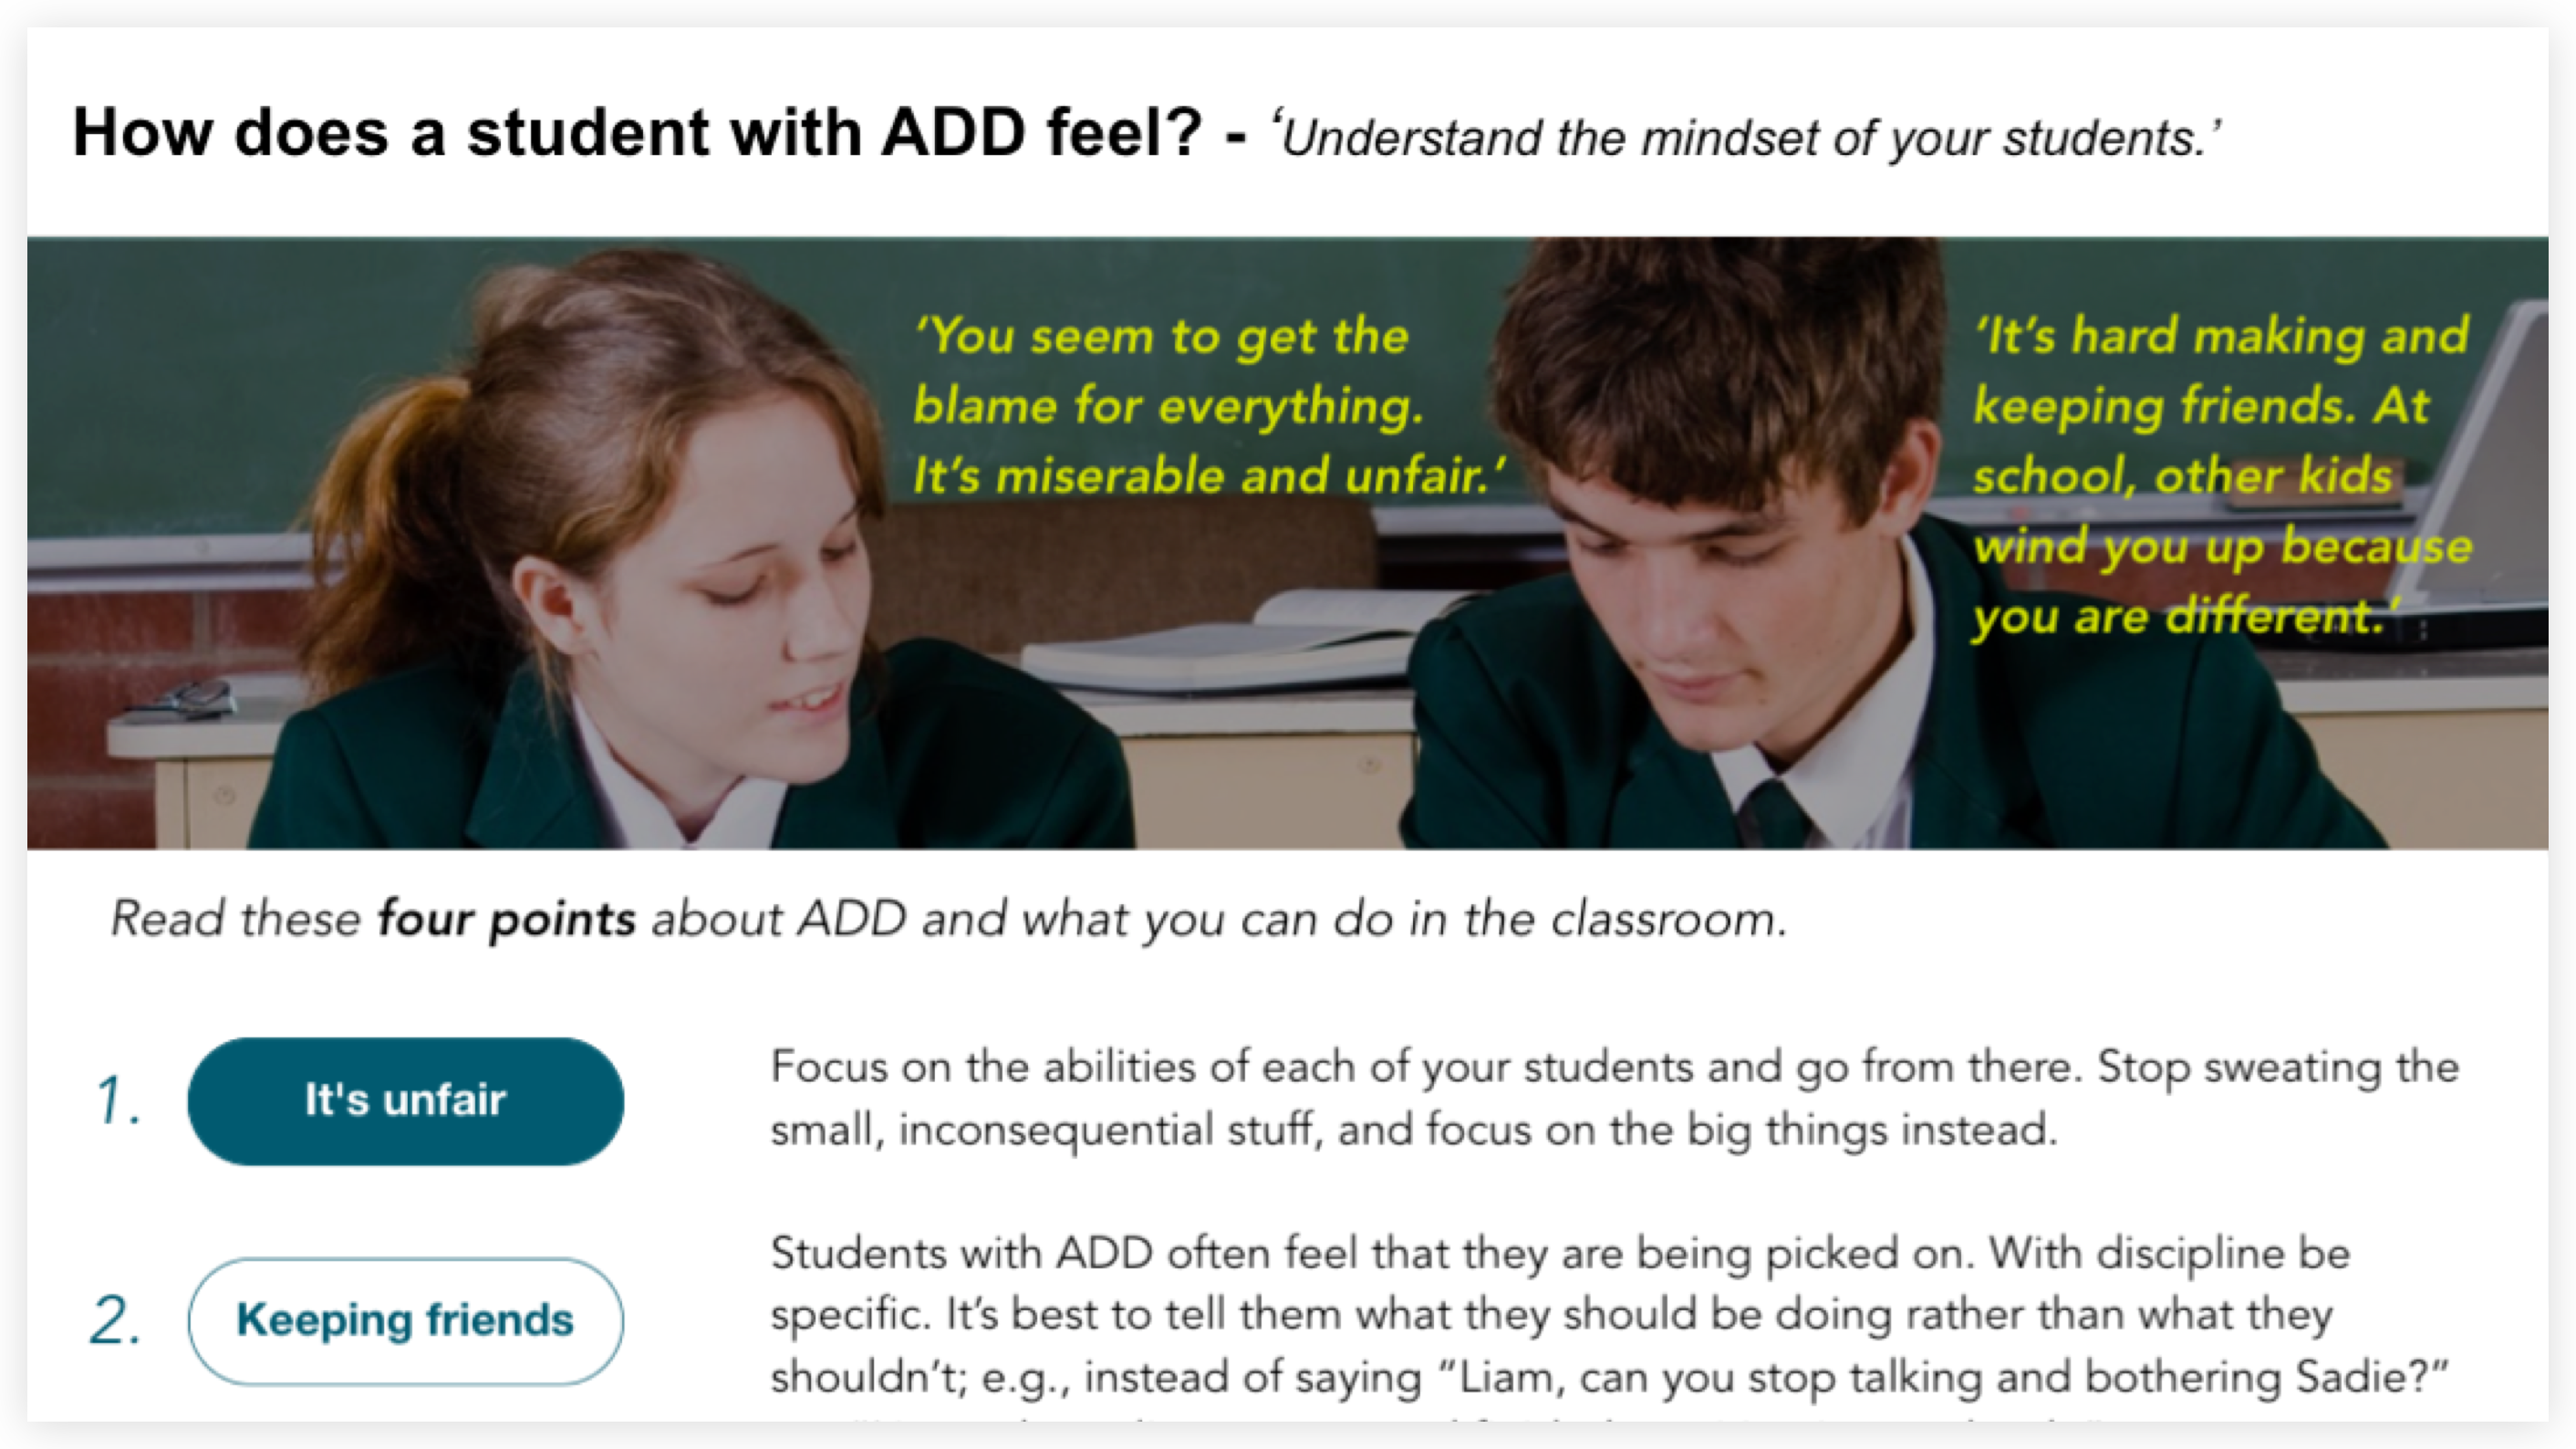 How does a student with ADD feel image